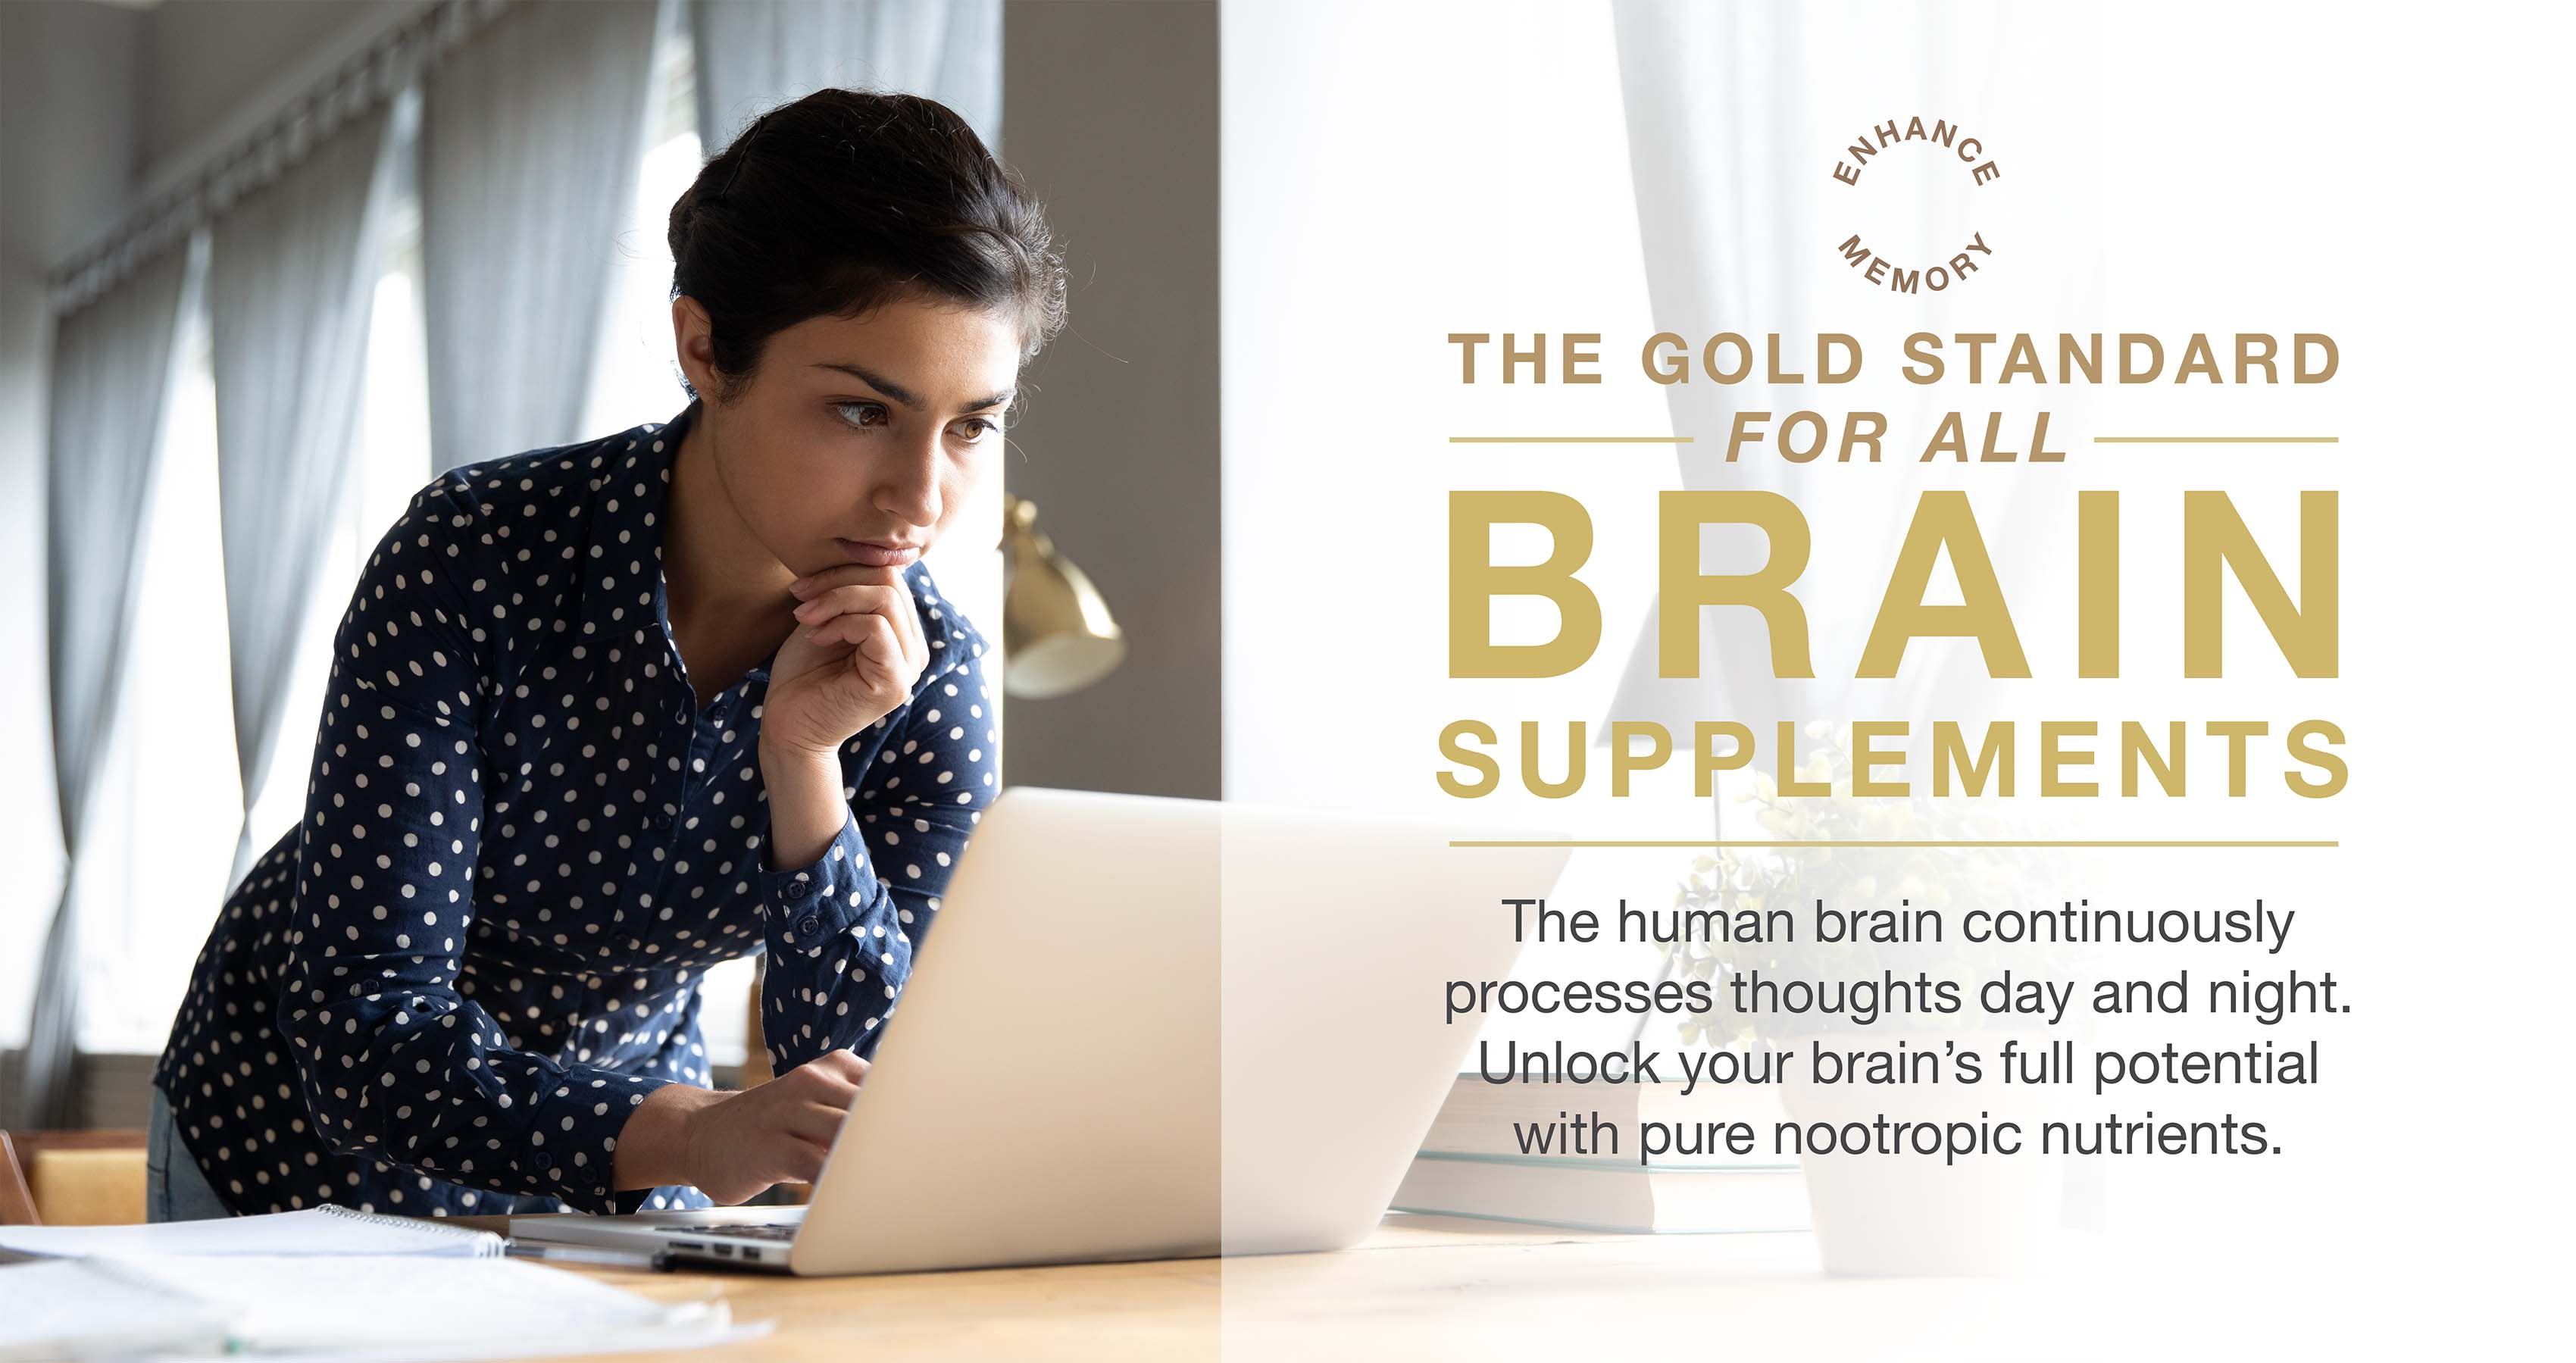 The gold standard for all brain supplements, unlock your brain's full potential with pure nootropic nutrients.